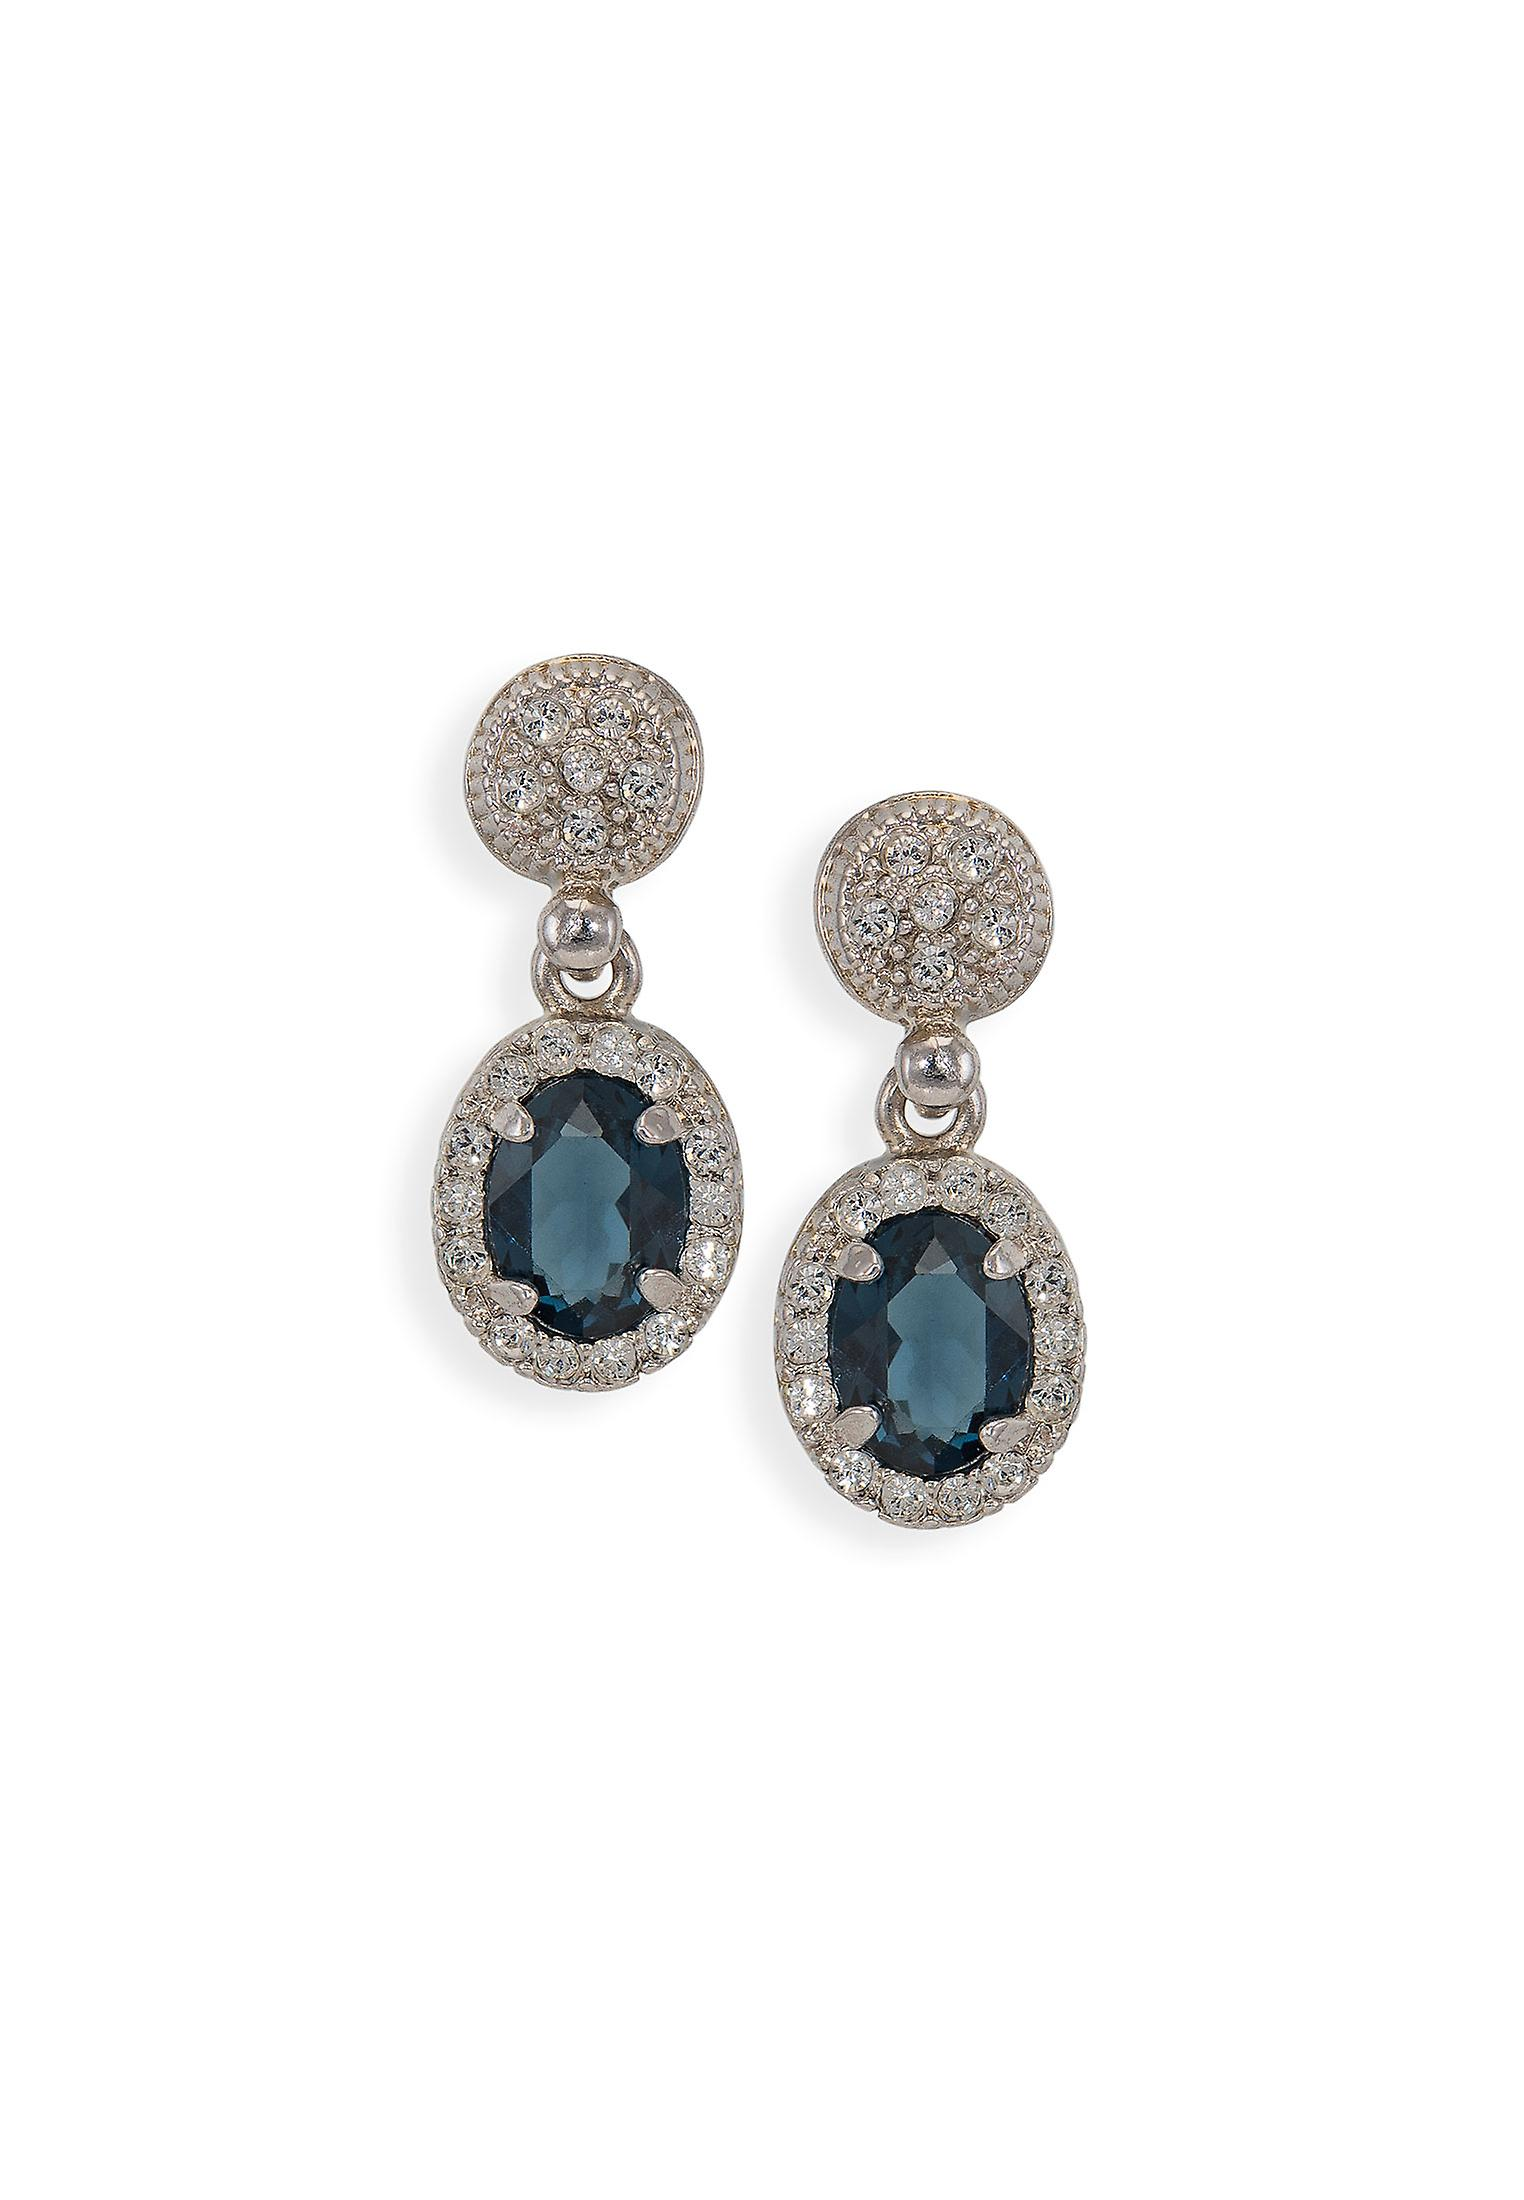 Blue earrings with crystals from Swarovski 4797